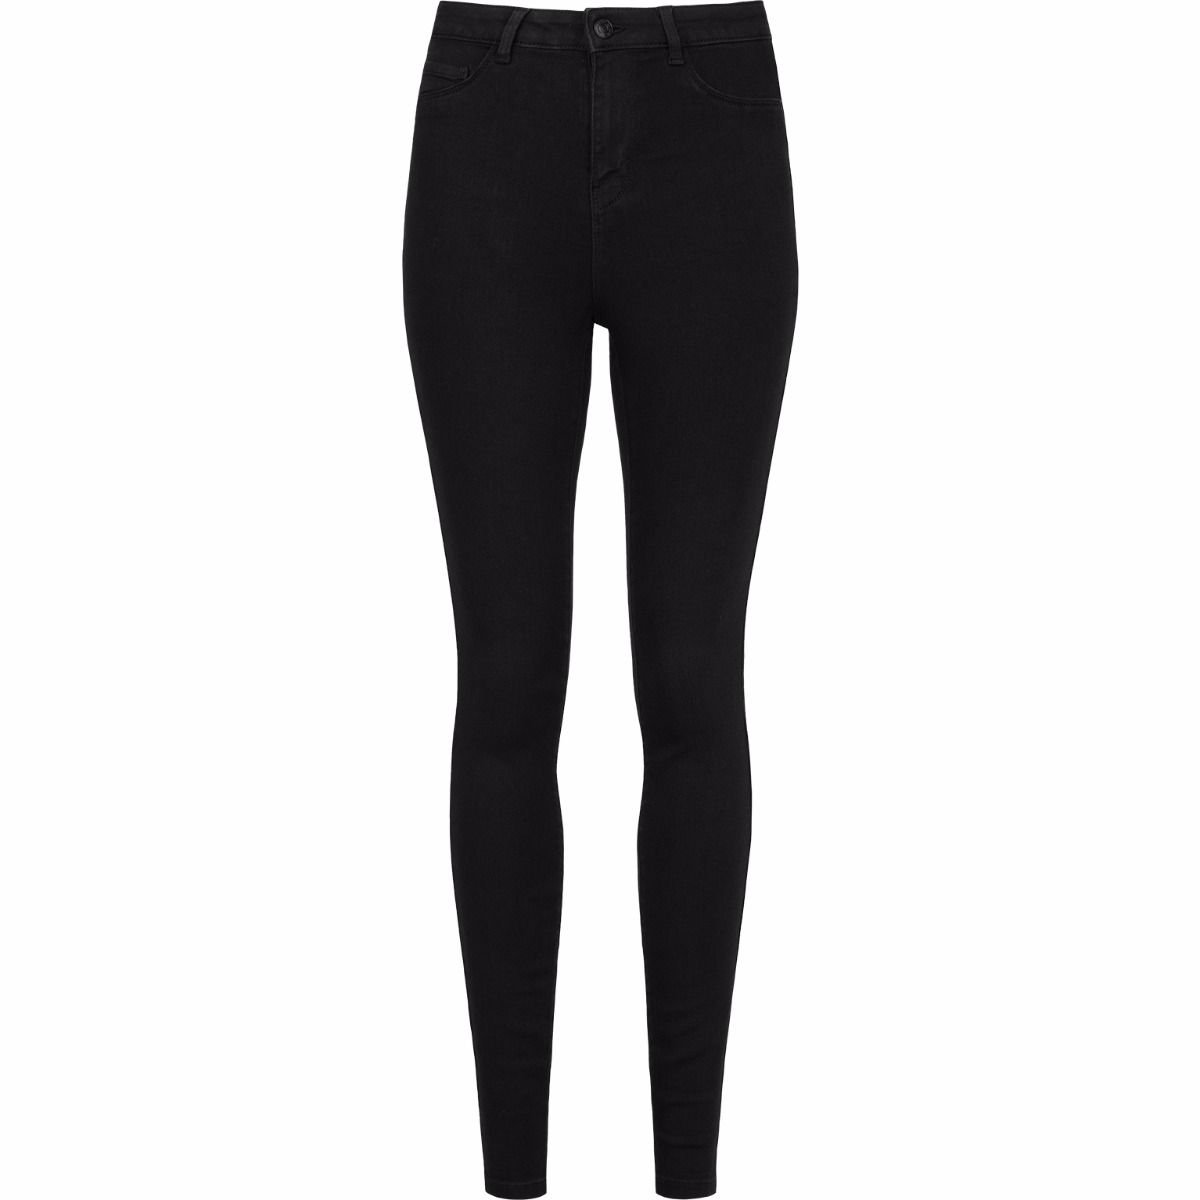 Skinny High Waist Jeans Black